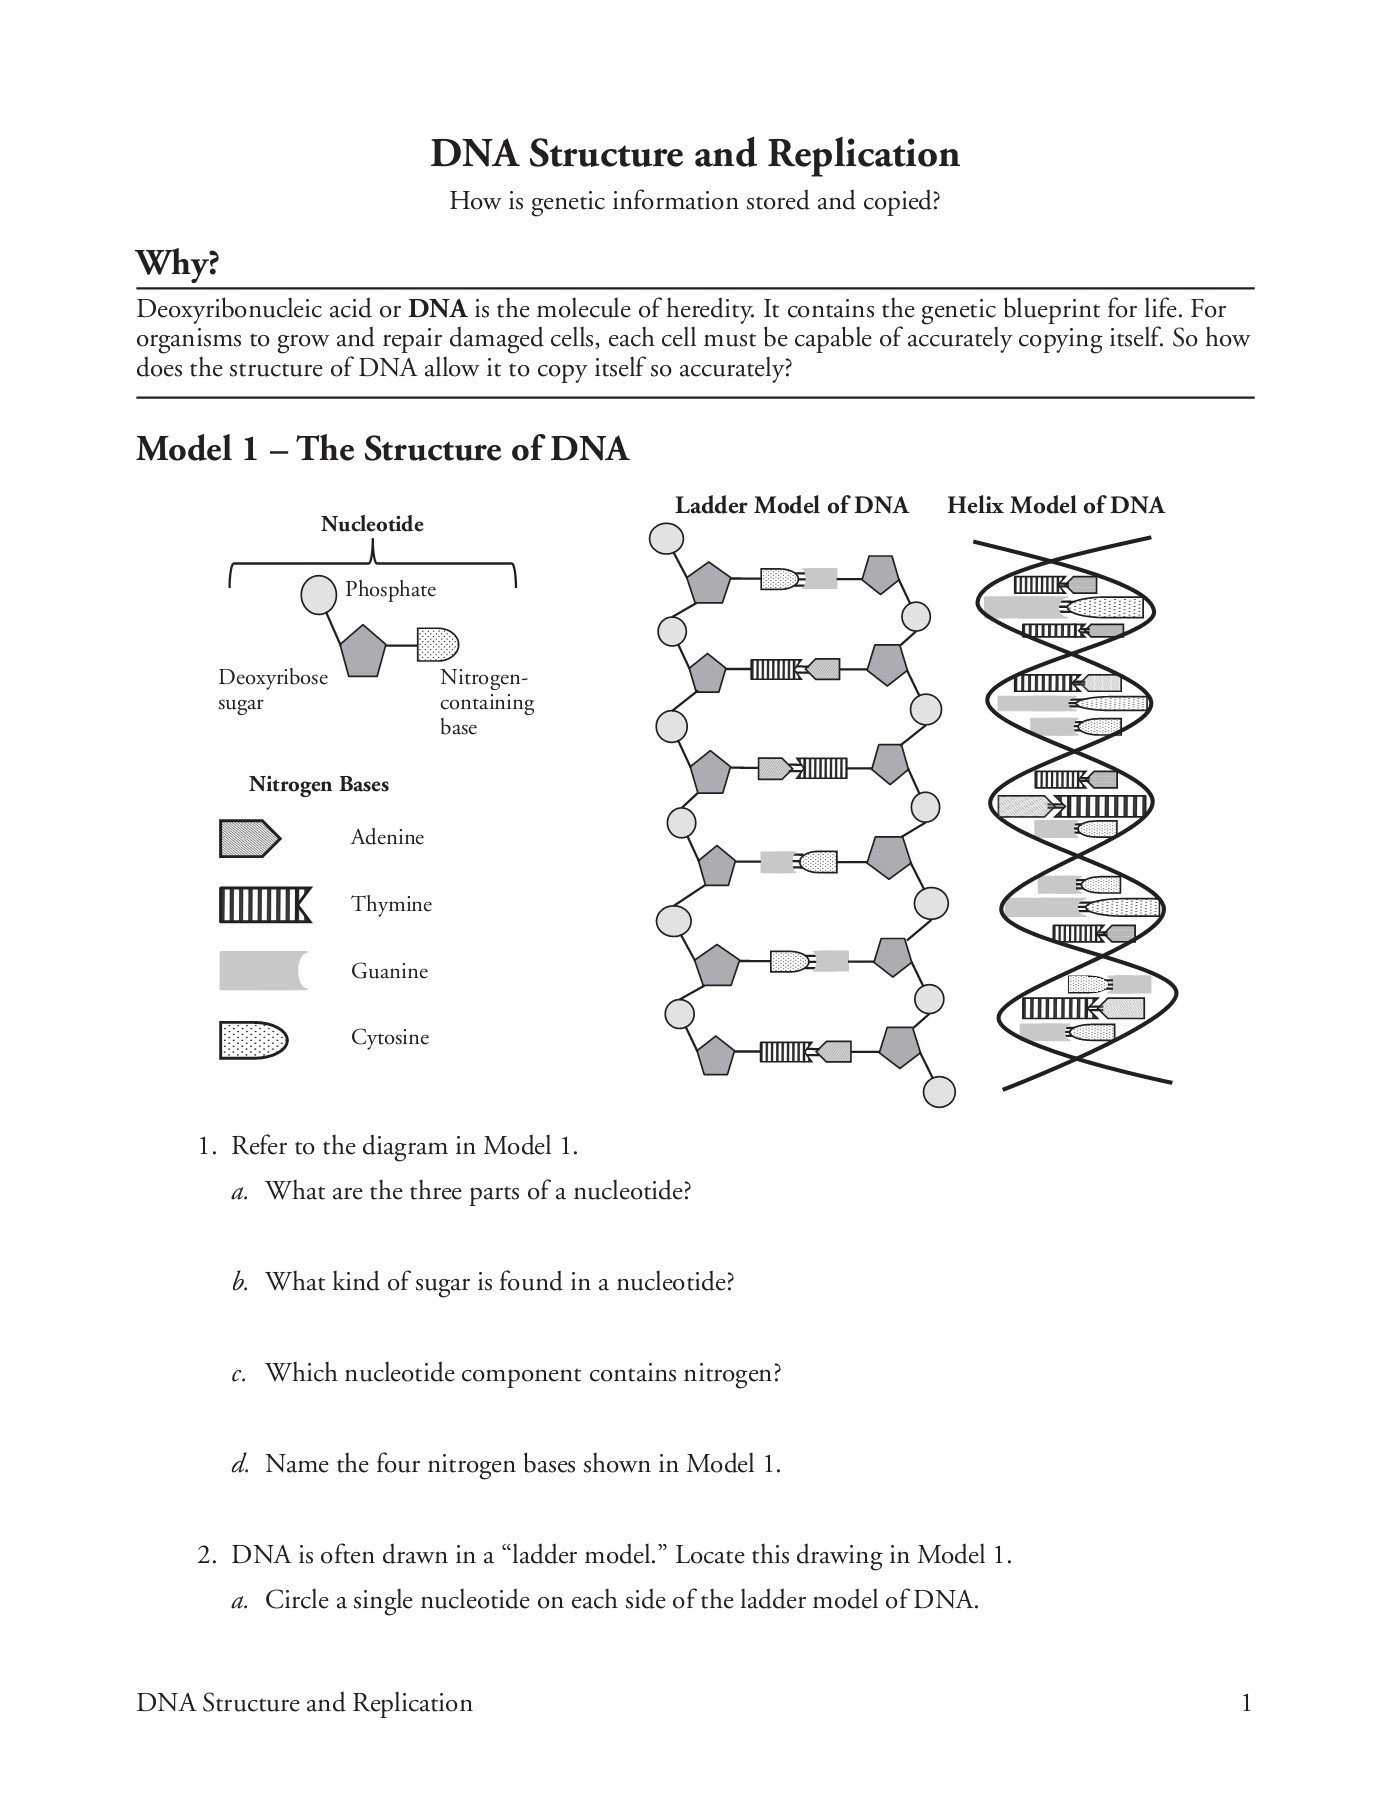 Dna Structure And Replication Pages 1  5  Text Version  Anyflip With Regard To Dna Structure And Replication Worksheet Answer Key